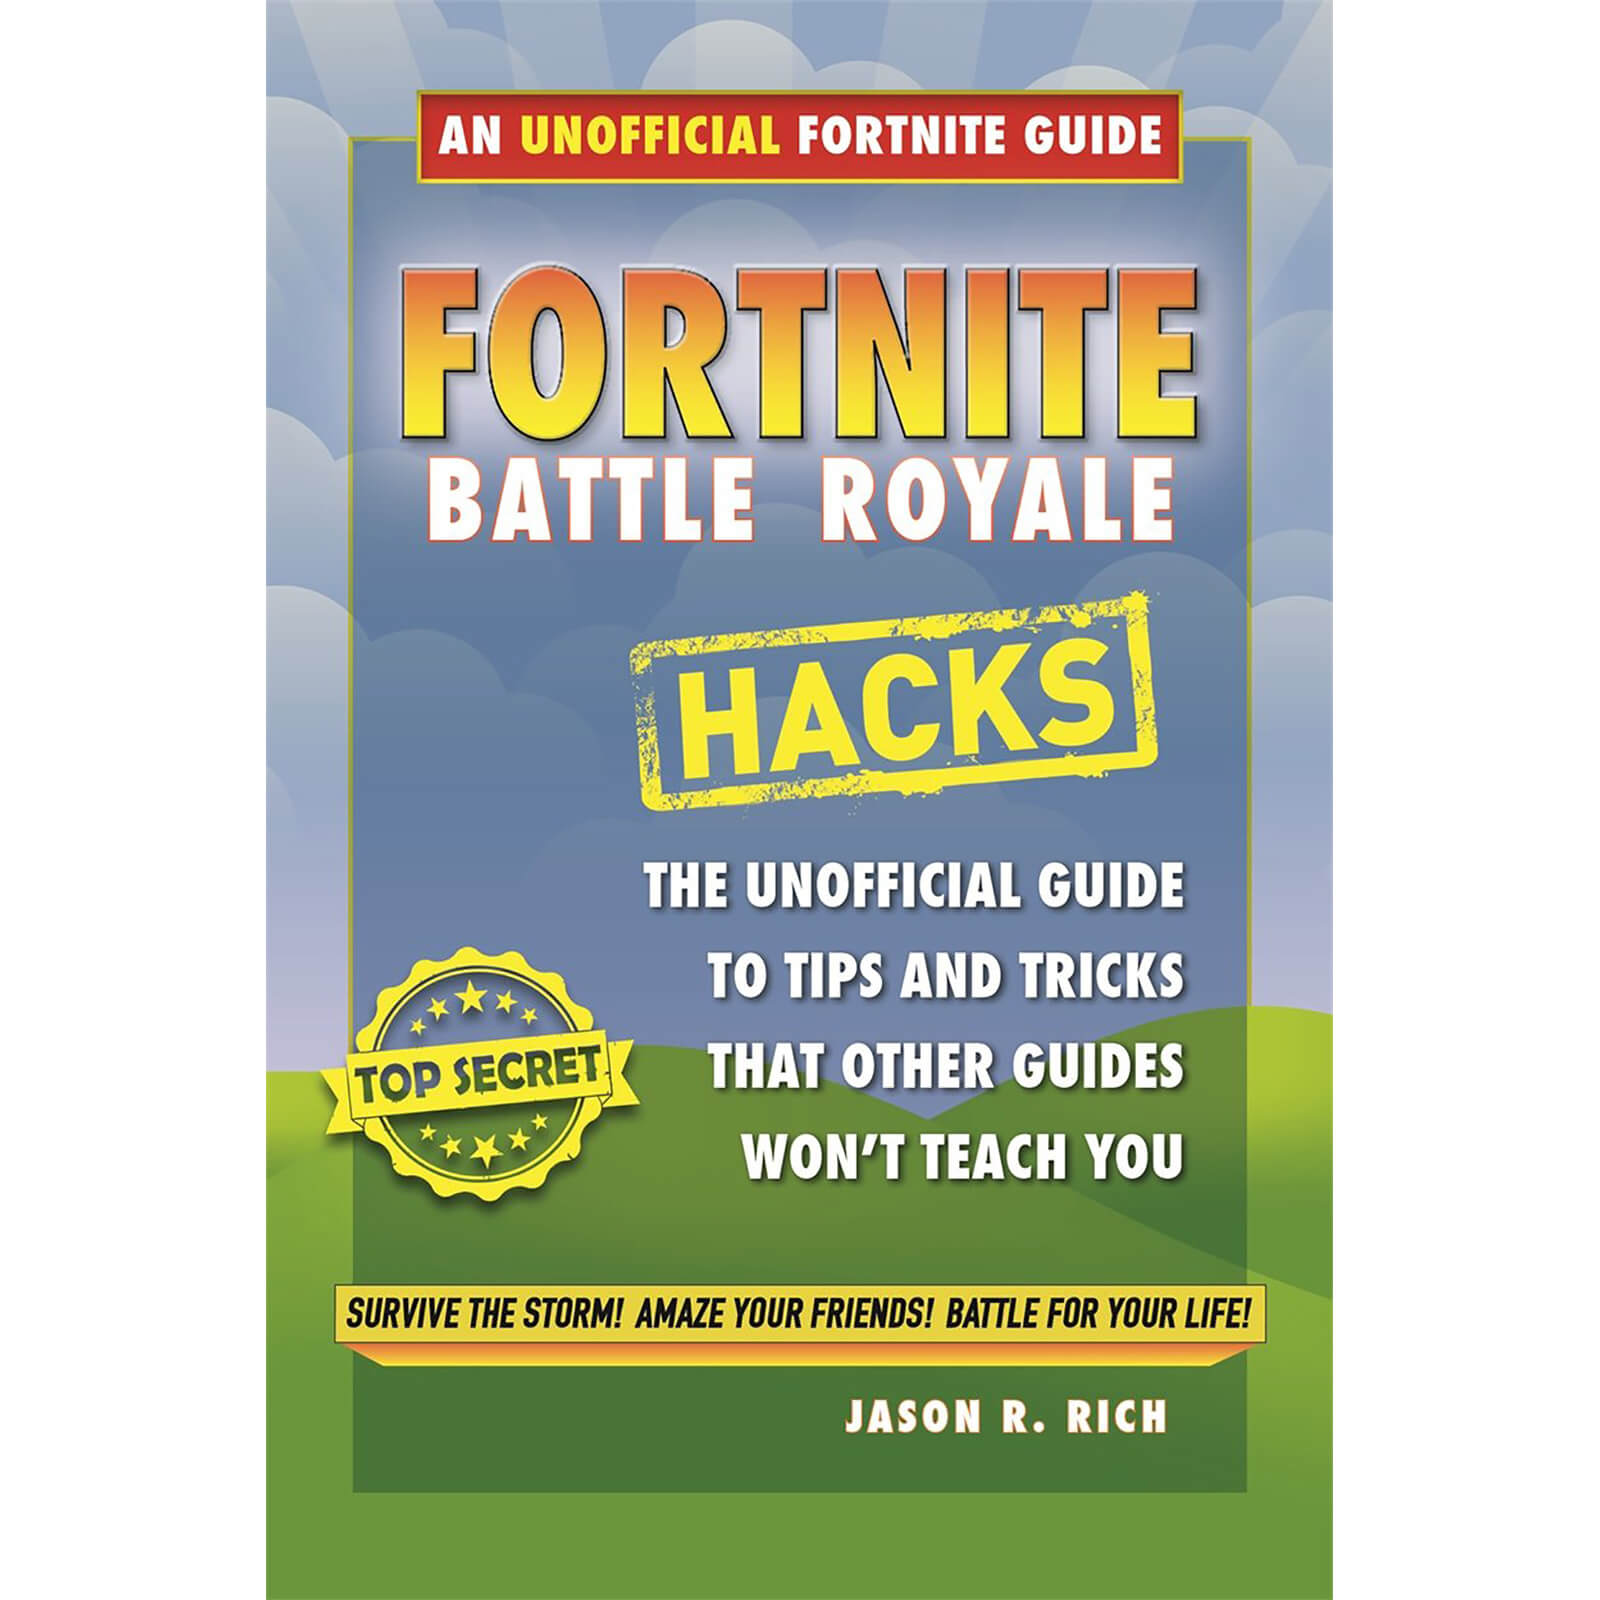 fortnite battle royale hacks book